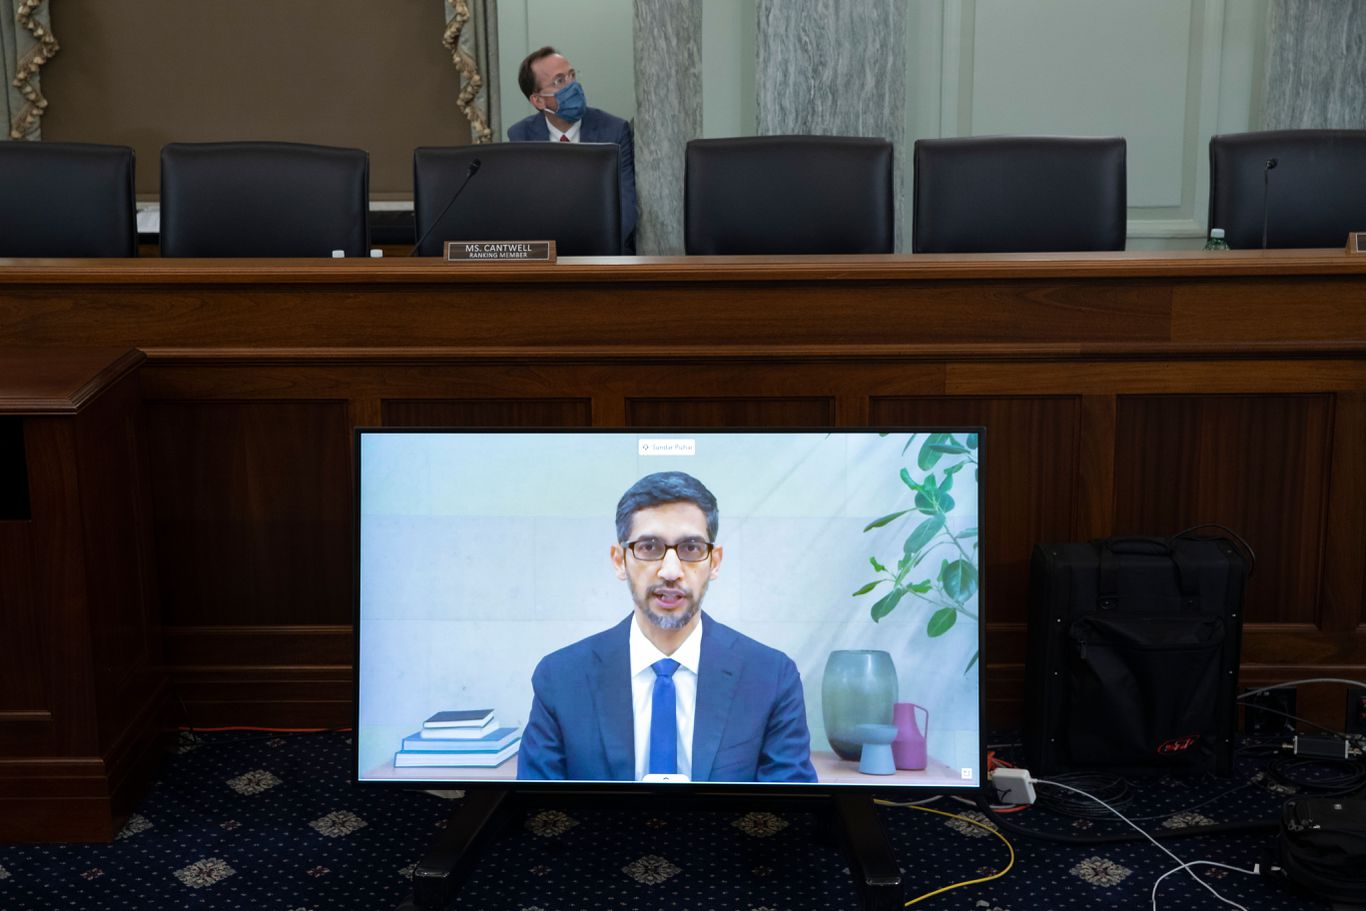 Parties trade election influence accusations at Big Tech hearing thumbnail